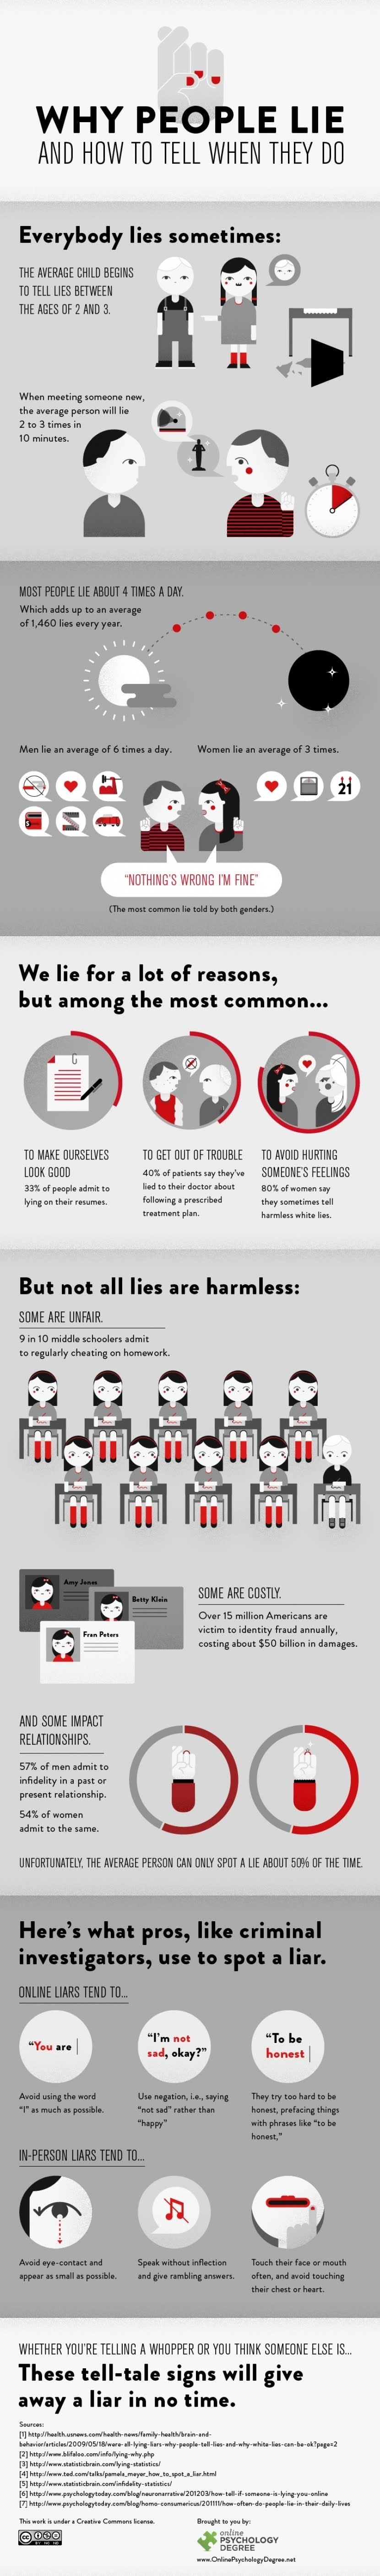 Why People Lie And How To Tell When They Do